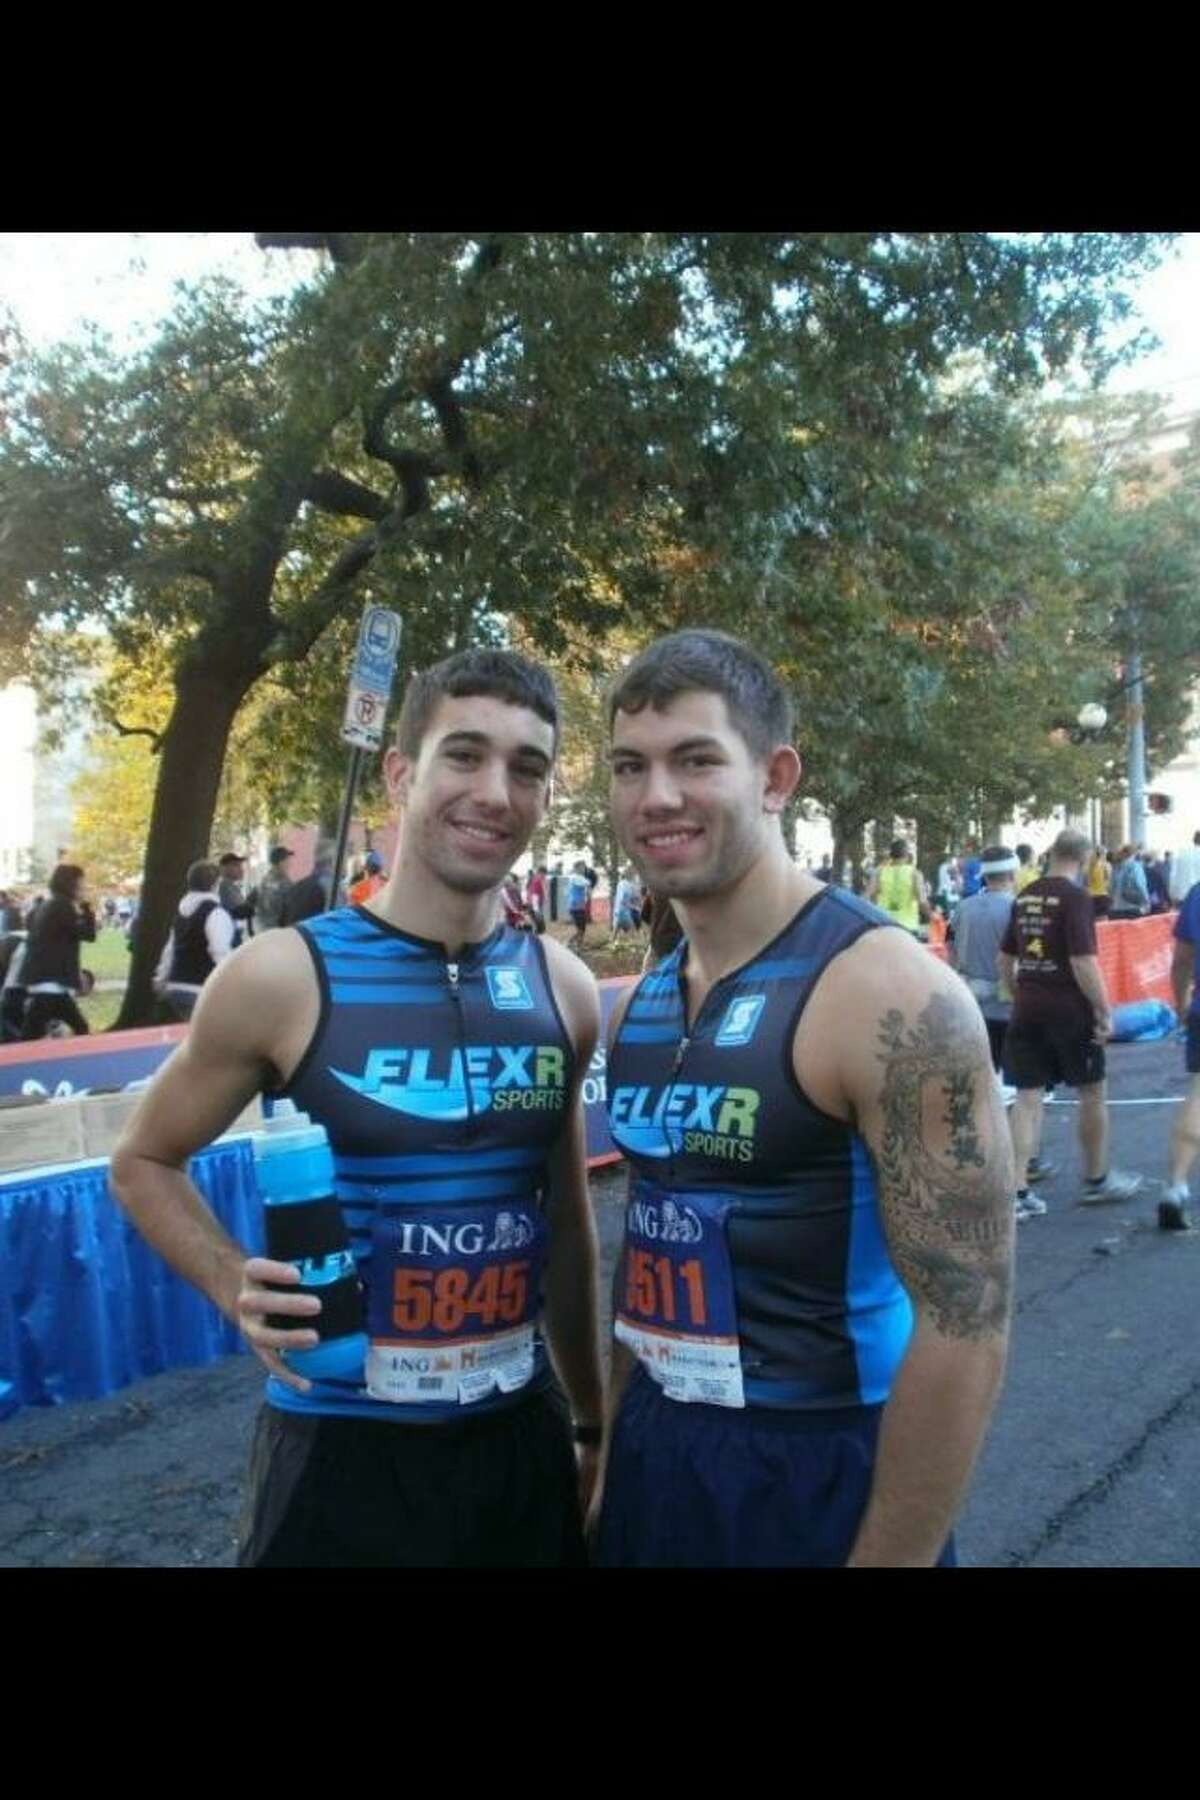 When John Corbo (left) was diagnosed with ulcerative colitis, a digestive disorder impacting him for the rest of his life, his best friend, 21-year-old Christopher Rinaldi, organized a 5k walk-run to benefit Corbo and the Crohn's and Colitis Foundation of America. The run is scheduled for Aug. 18 at 9:30 a.m.